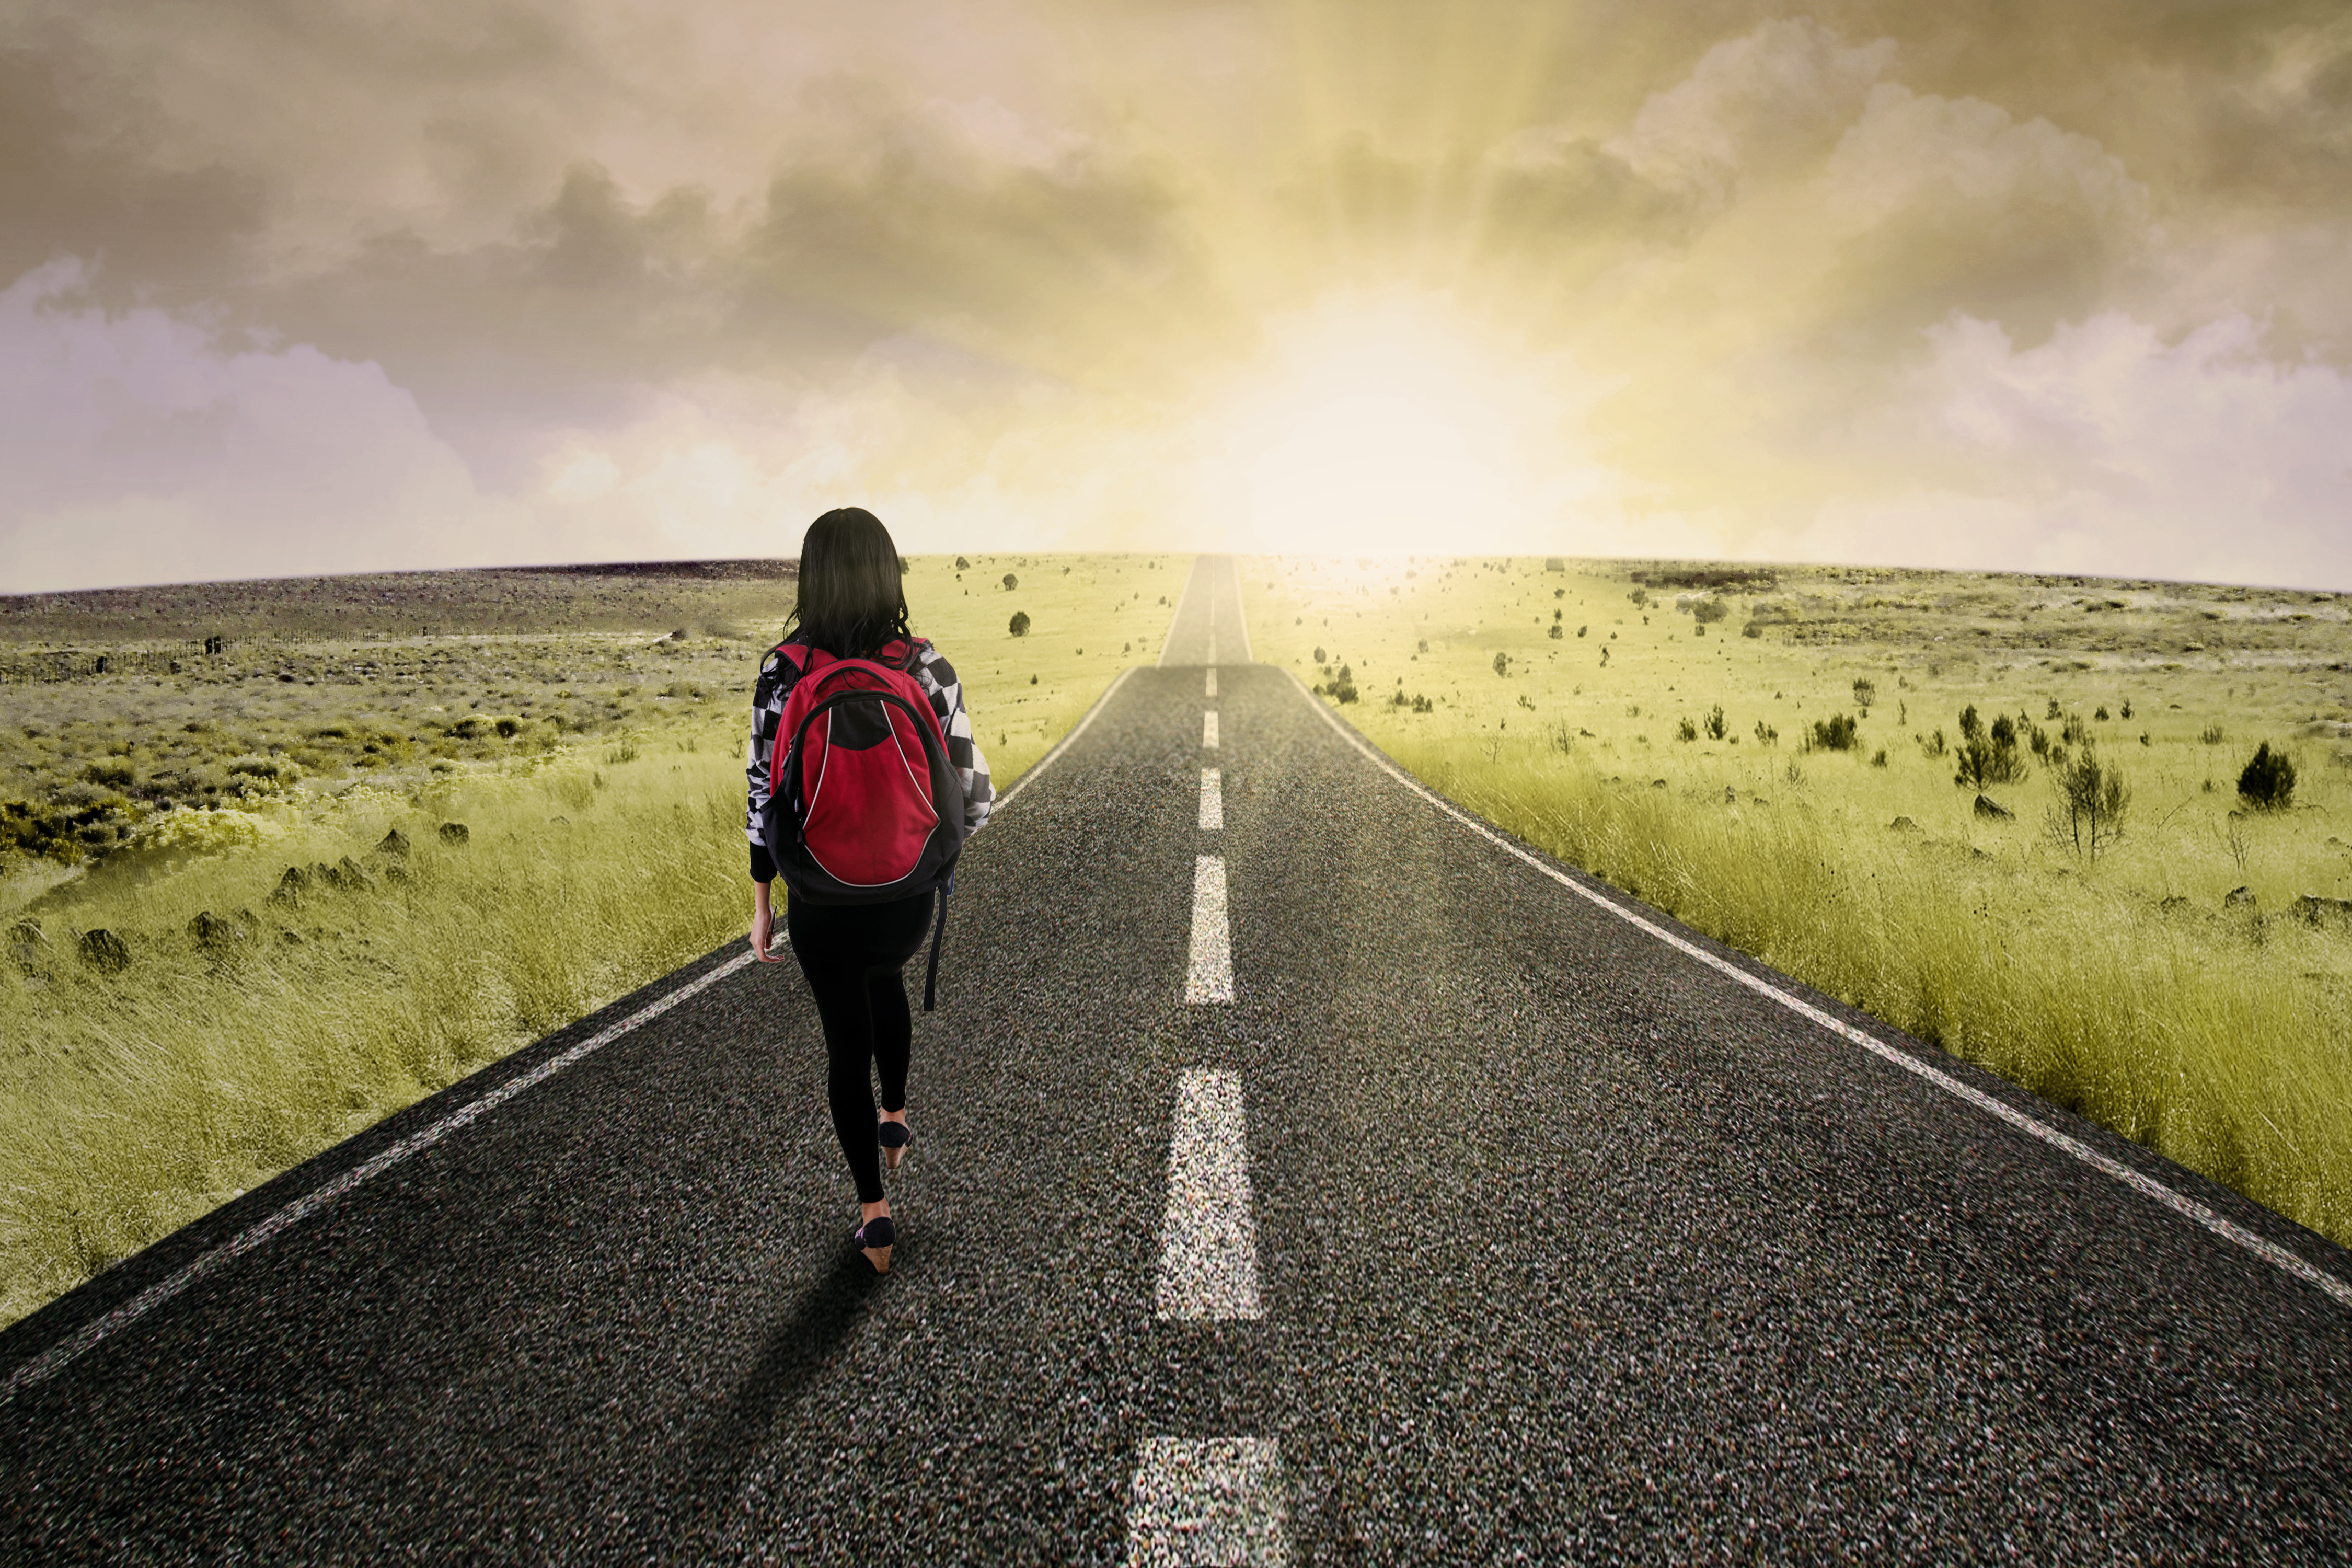 how to get into college peterson s blog get into college · female college student walk on the road to start her journey and gain bright future